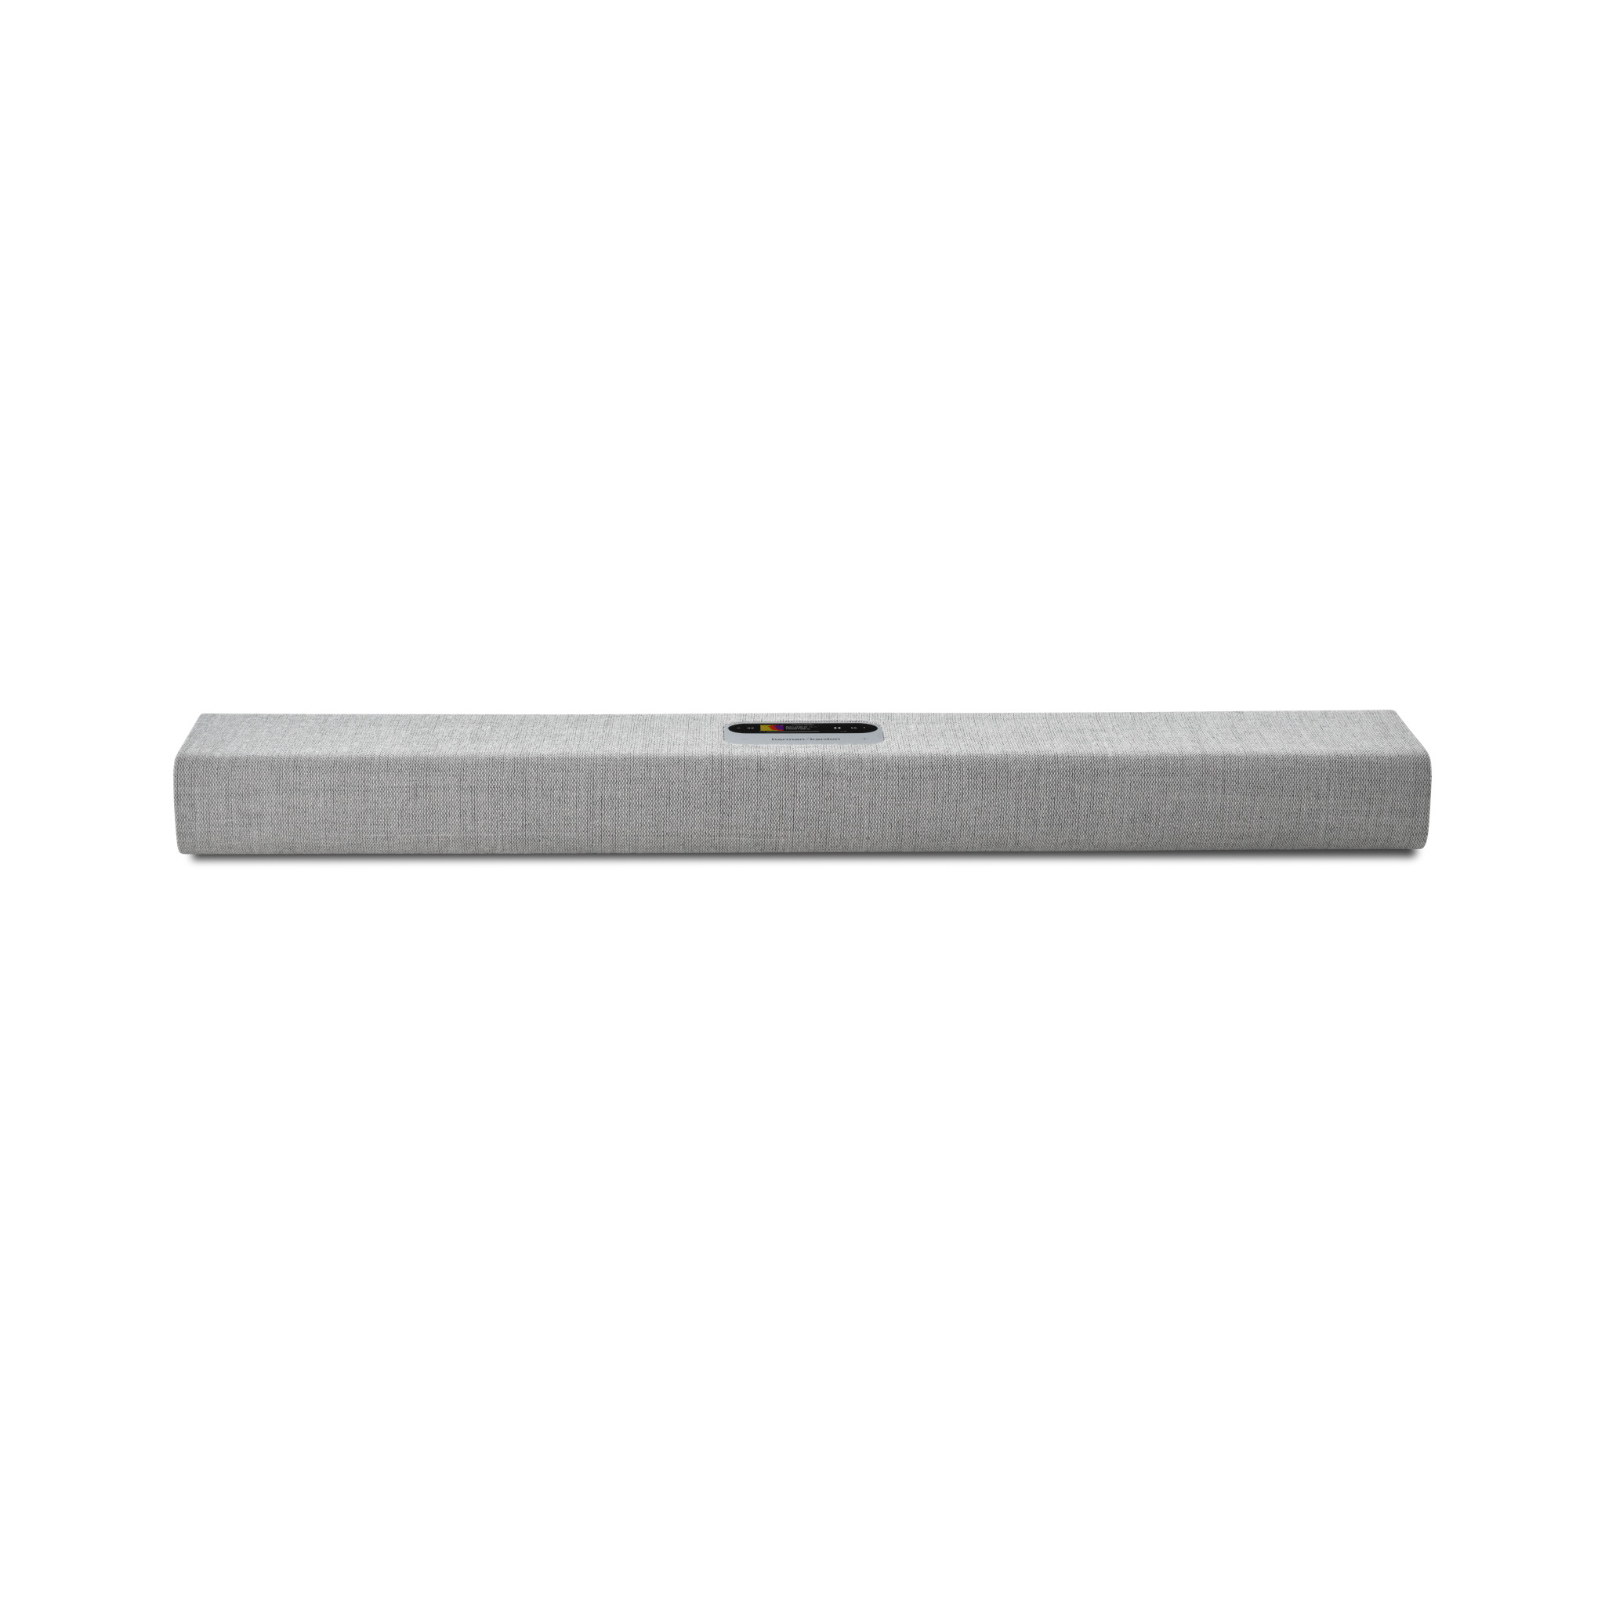 Harman Kardon Citation MultiBeam™ 700 - Grey - The smartest, compact soundbar with MultiBeam™ surround sound - Front